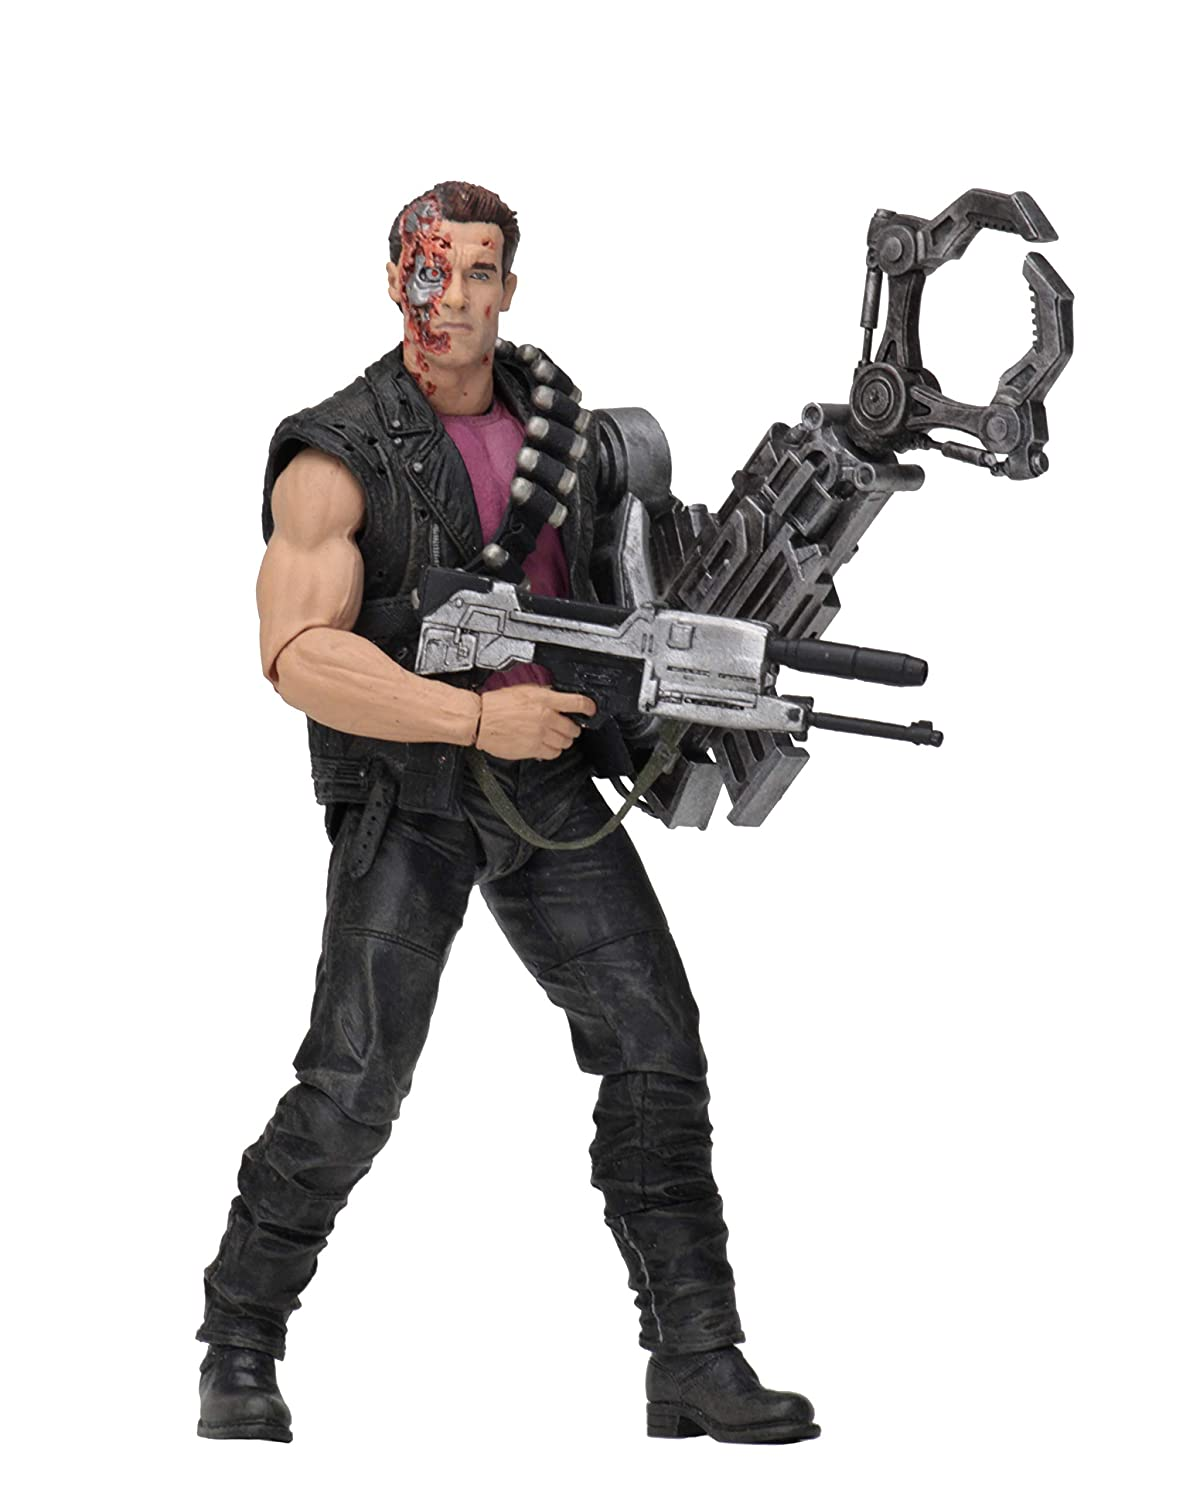 Terminator 2-7 Scale Action Figure Kenner Tribute NECA Power Arm T-800 SG/_B07MSGJL3P/_US